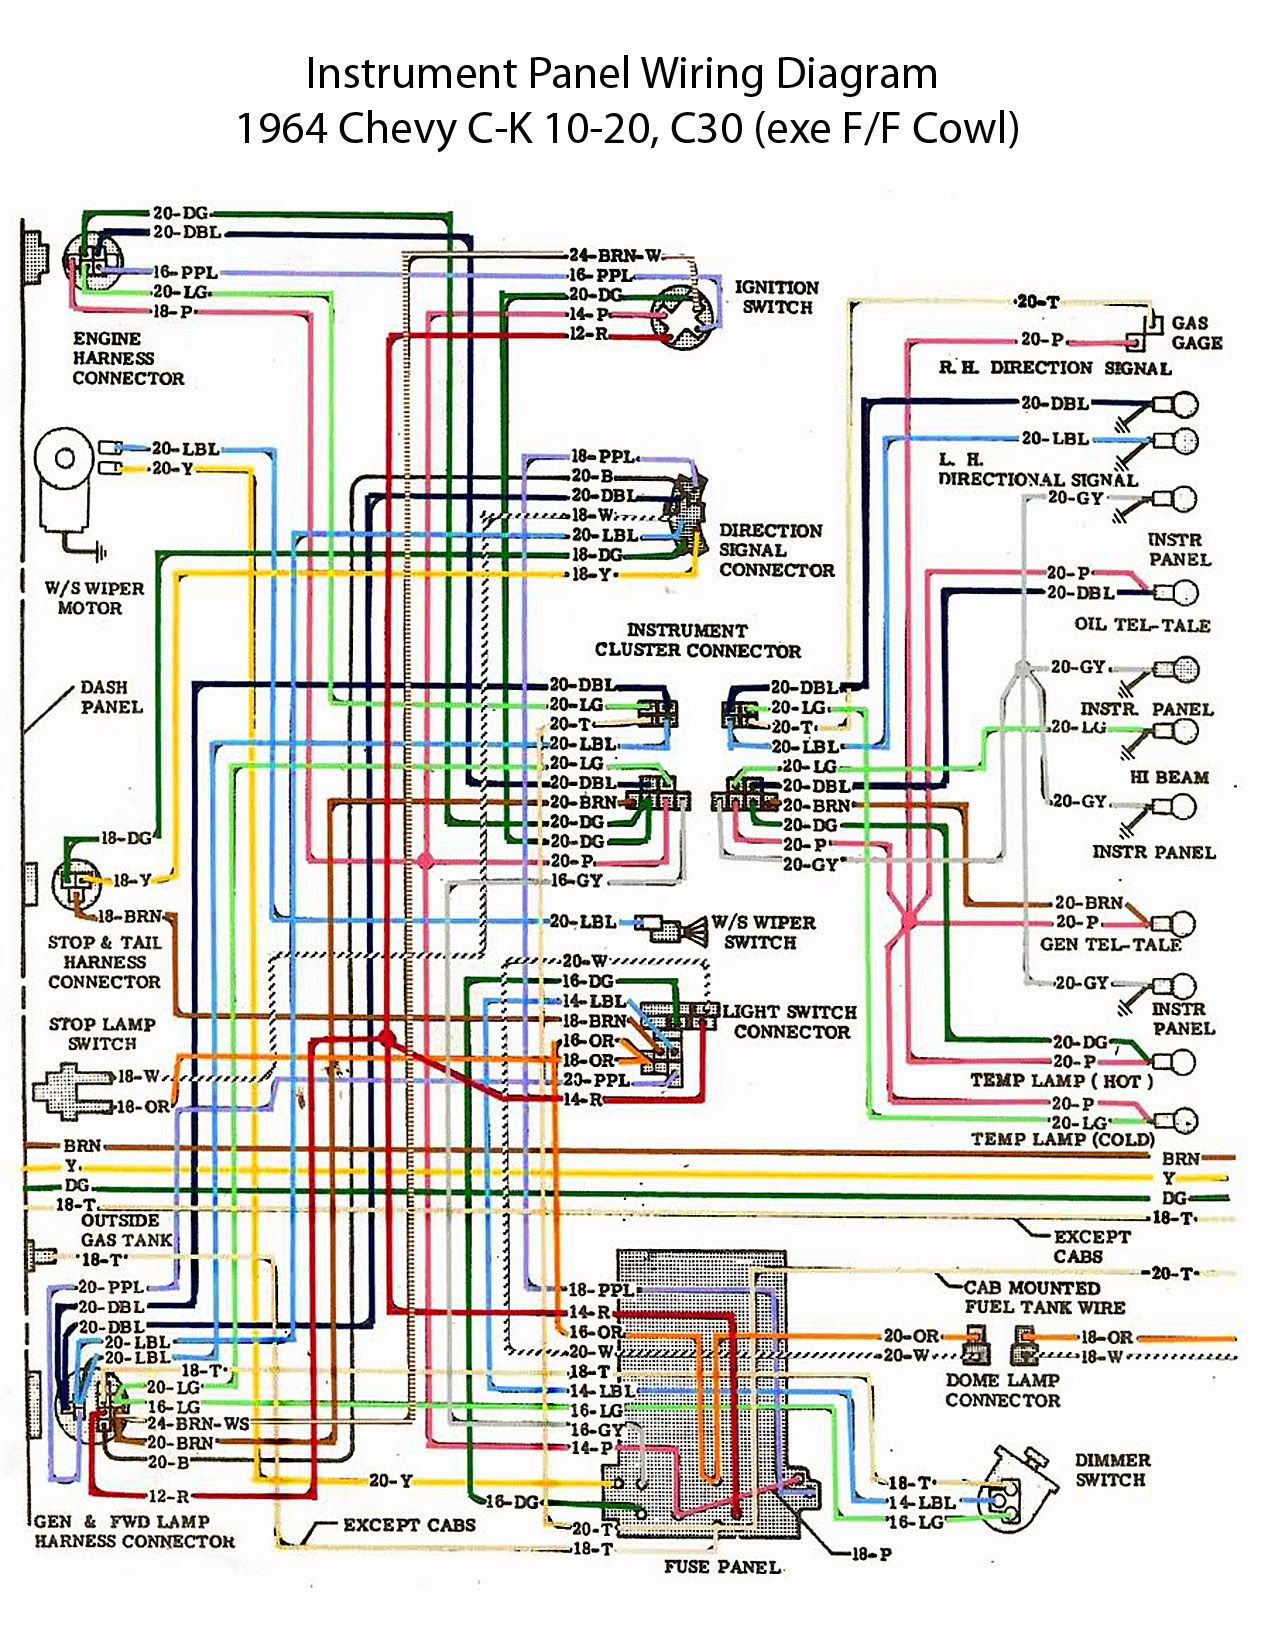 DIAGRAM] 1978 Chevy C 10 Wiring Diagram FULL Version HD Quality Wiring  Diagram - TYPE568CWIRING.JM-OPTICDOMICILE.FRWiring And Fuse Database